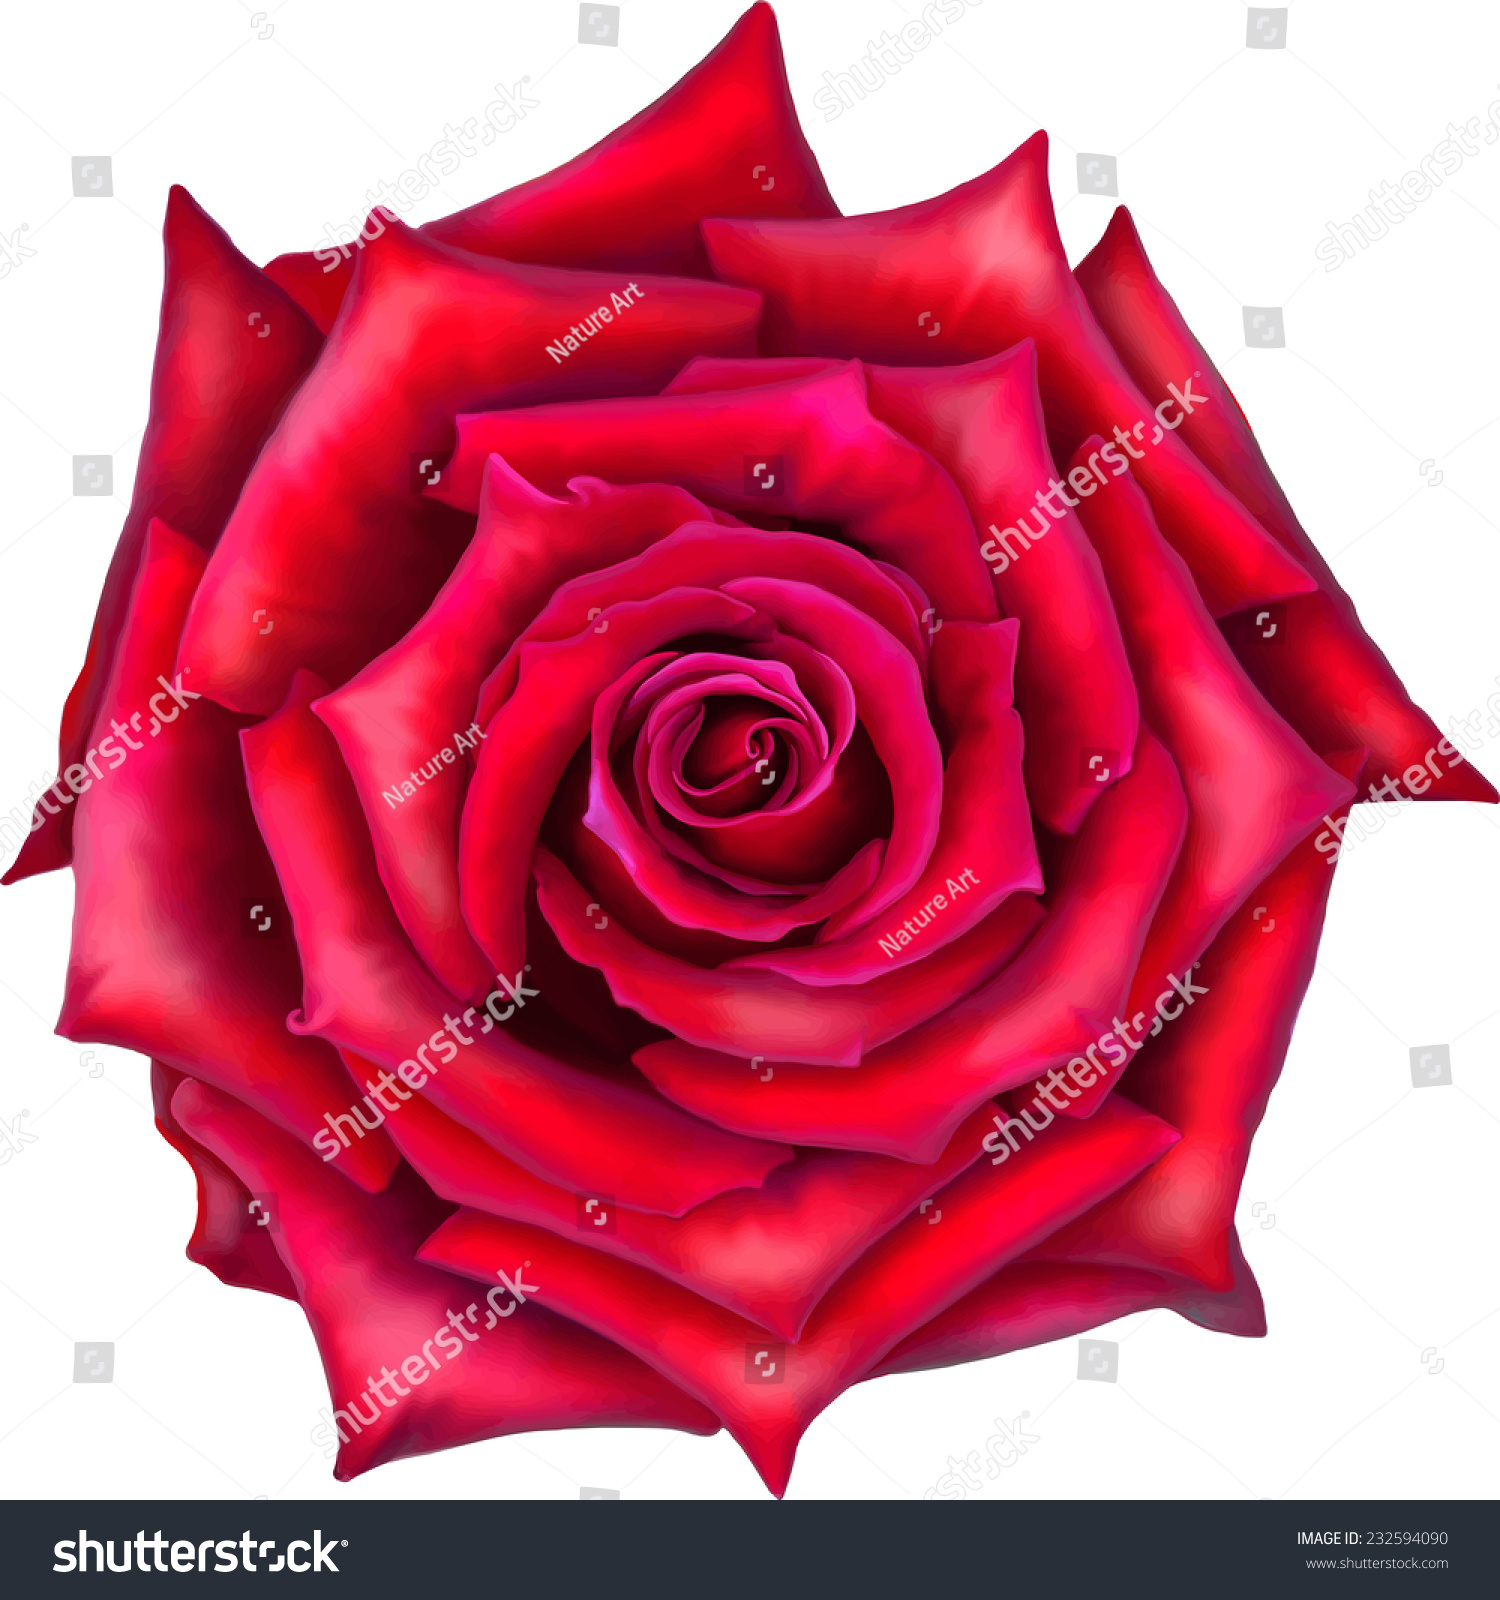 Big red rose flower front view isolated on white - Big rose flower wallpaper ...